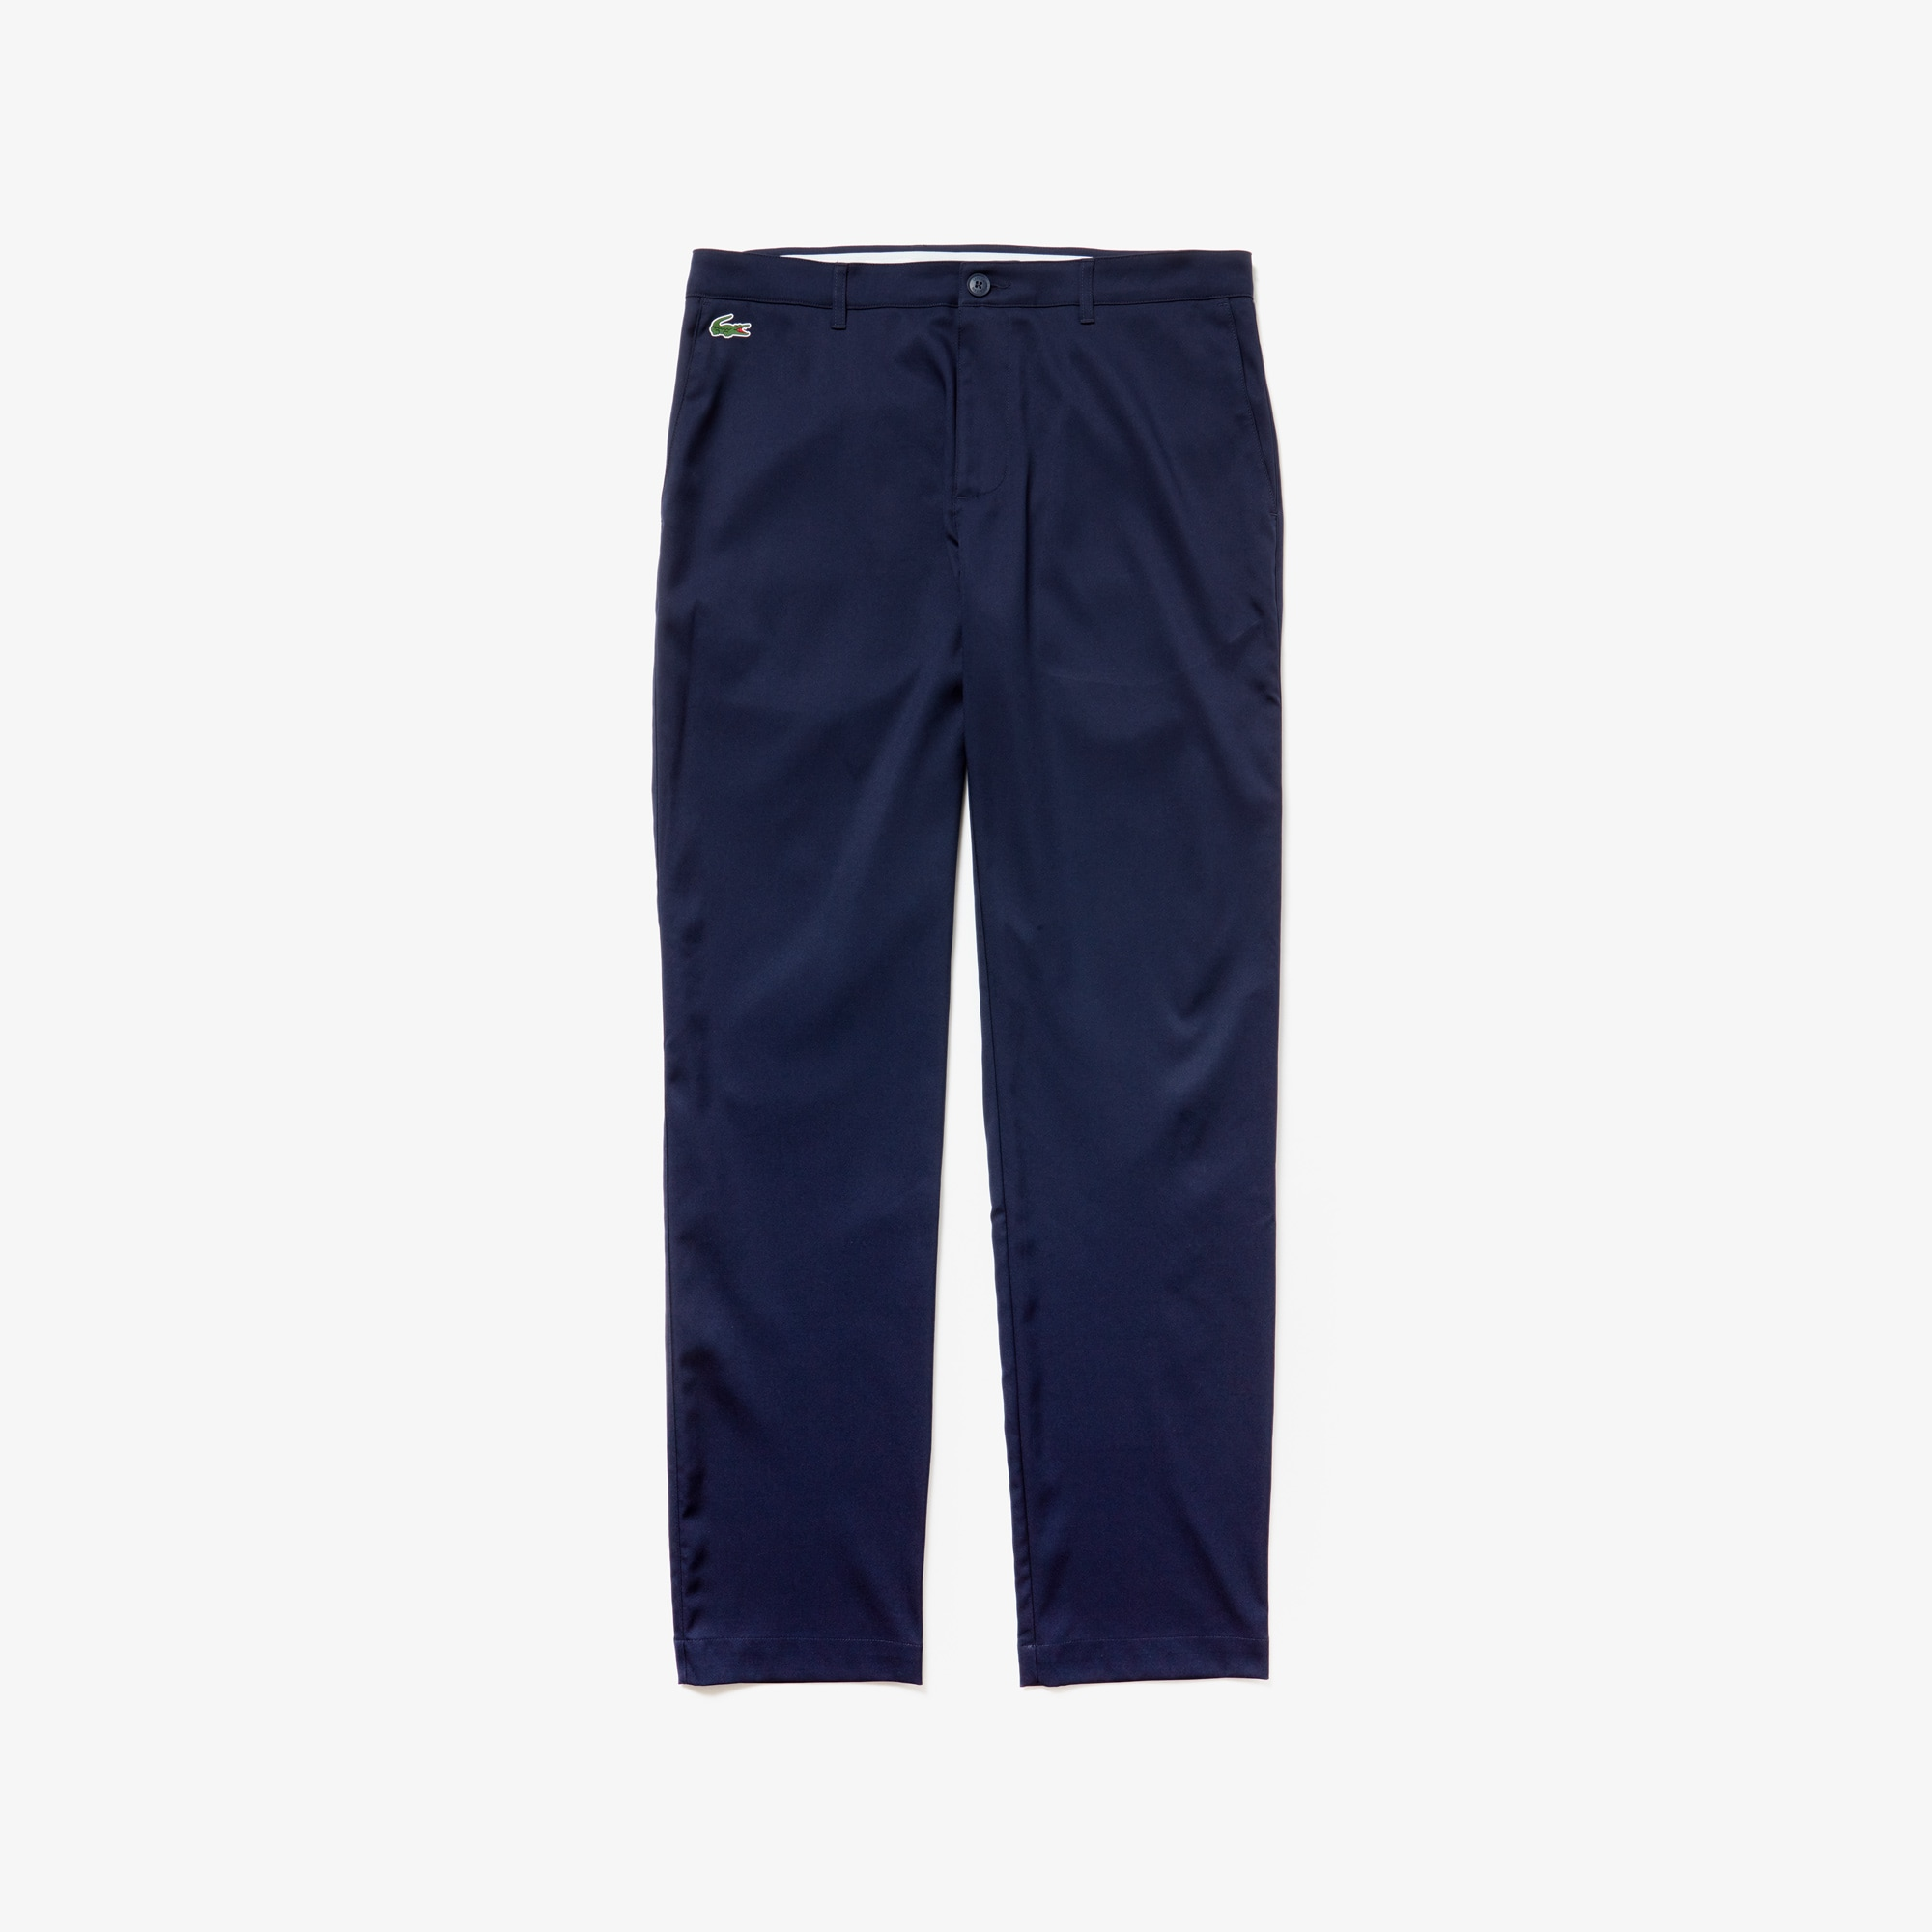 라코스테 Lacoste Mens SPORT Technical Gabardine Golf Chino Pants,navy blue